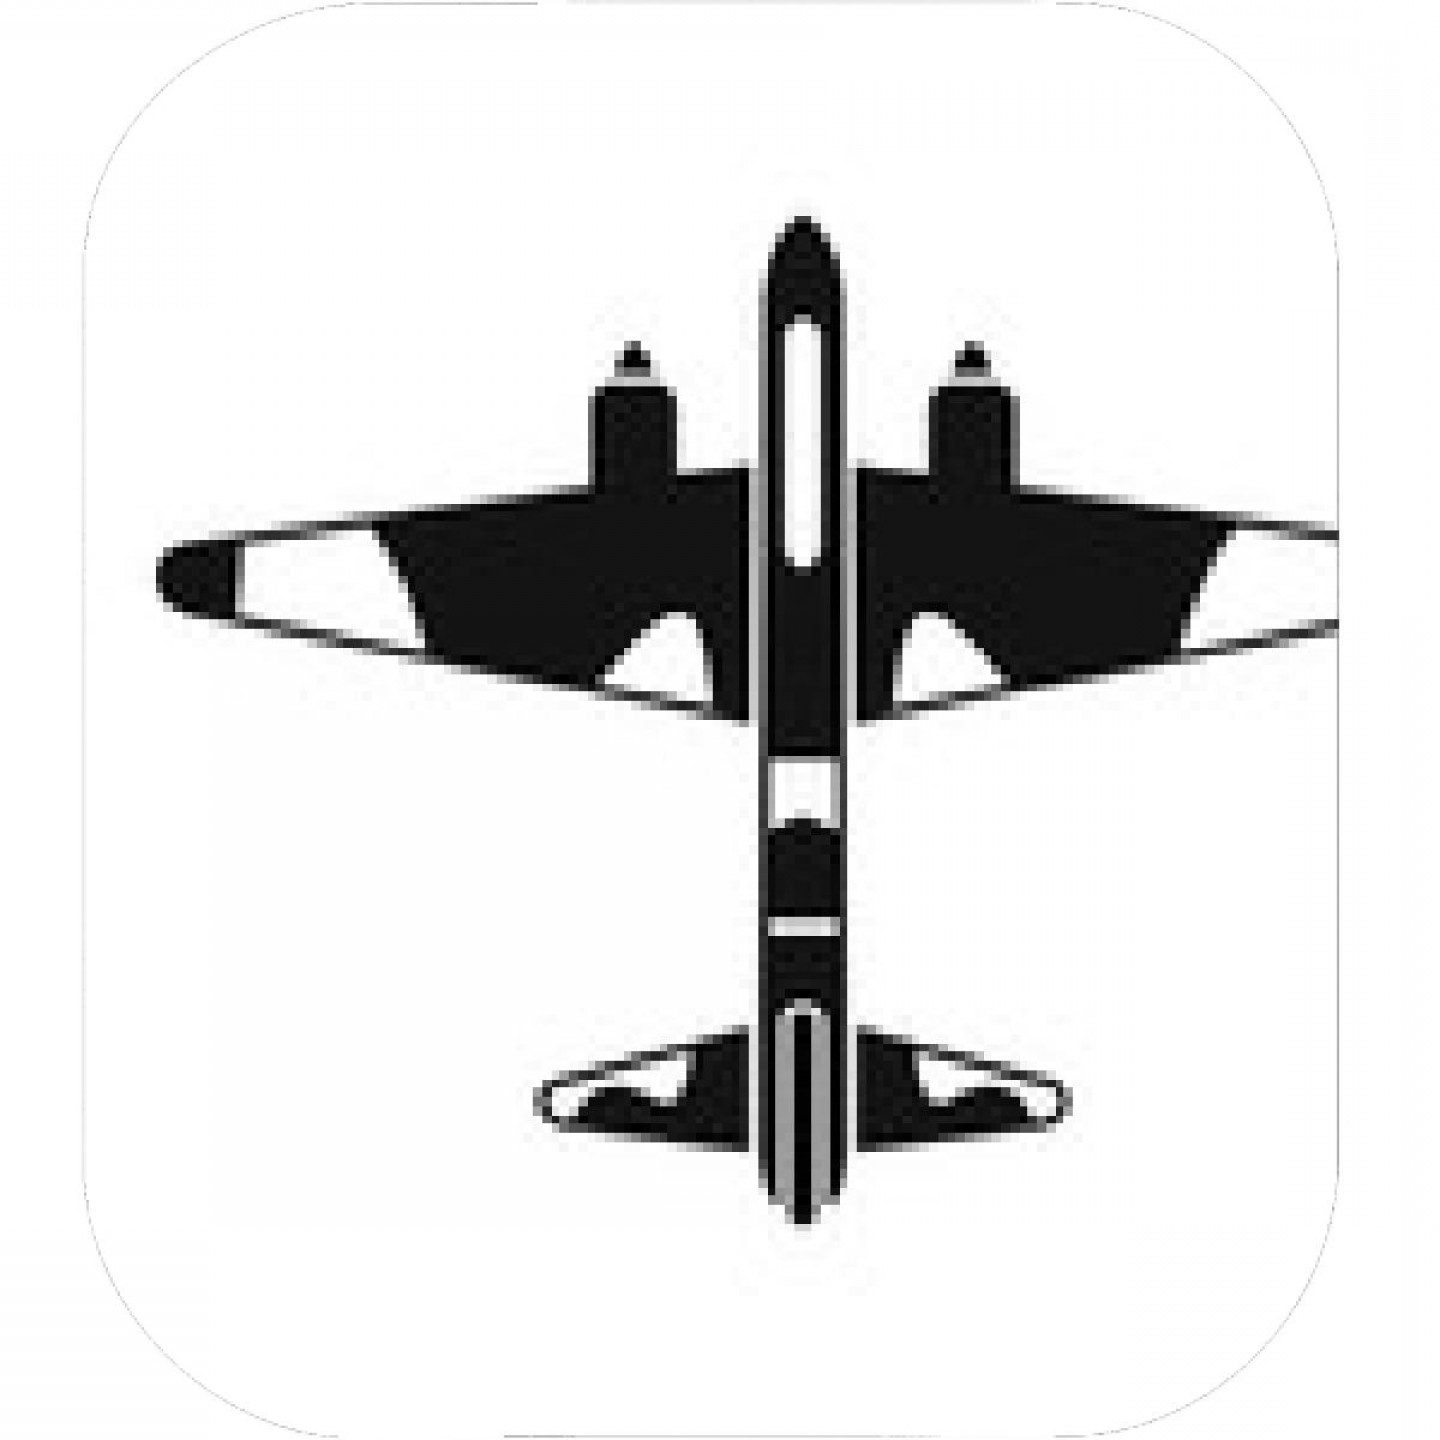 Old School Airplane Fighter Silhouette Vector: Military Fighter Aircraft Icon Simple Illustration Of Vector Icon For Web